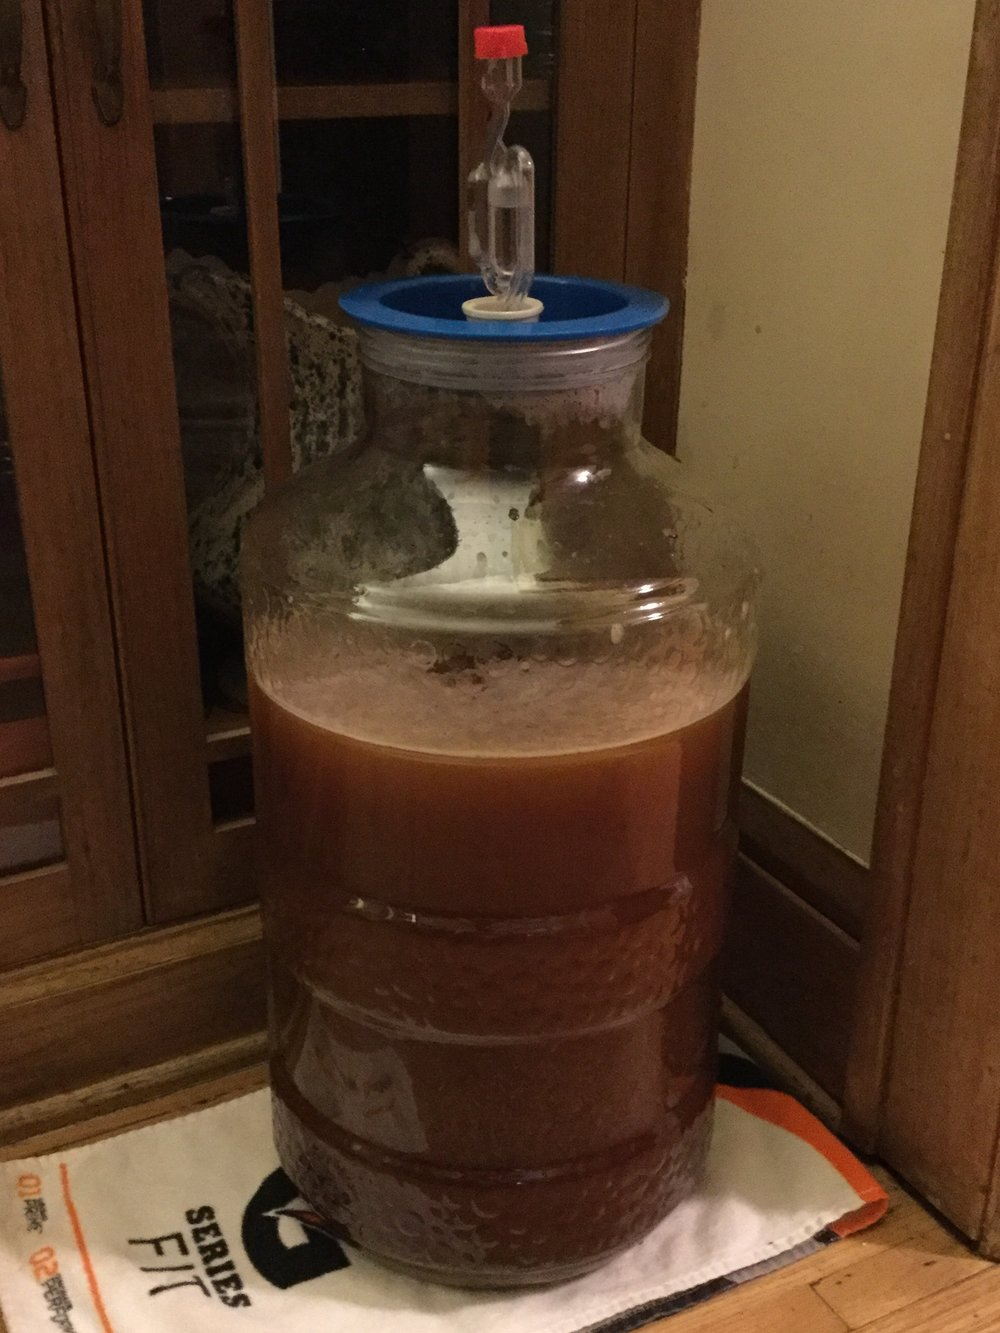 My second batch in the works, a Bavarian Hefeweizen.